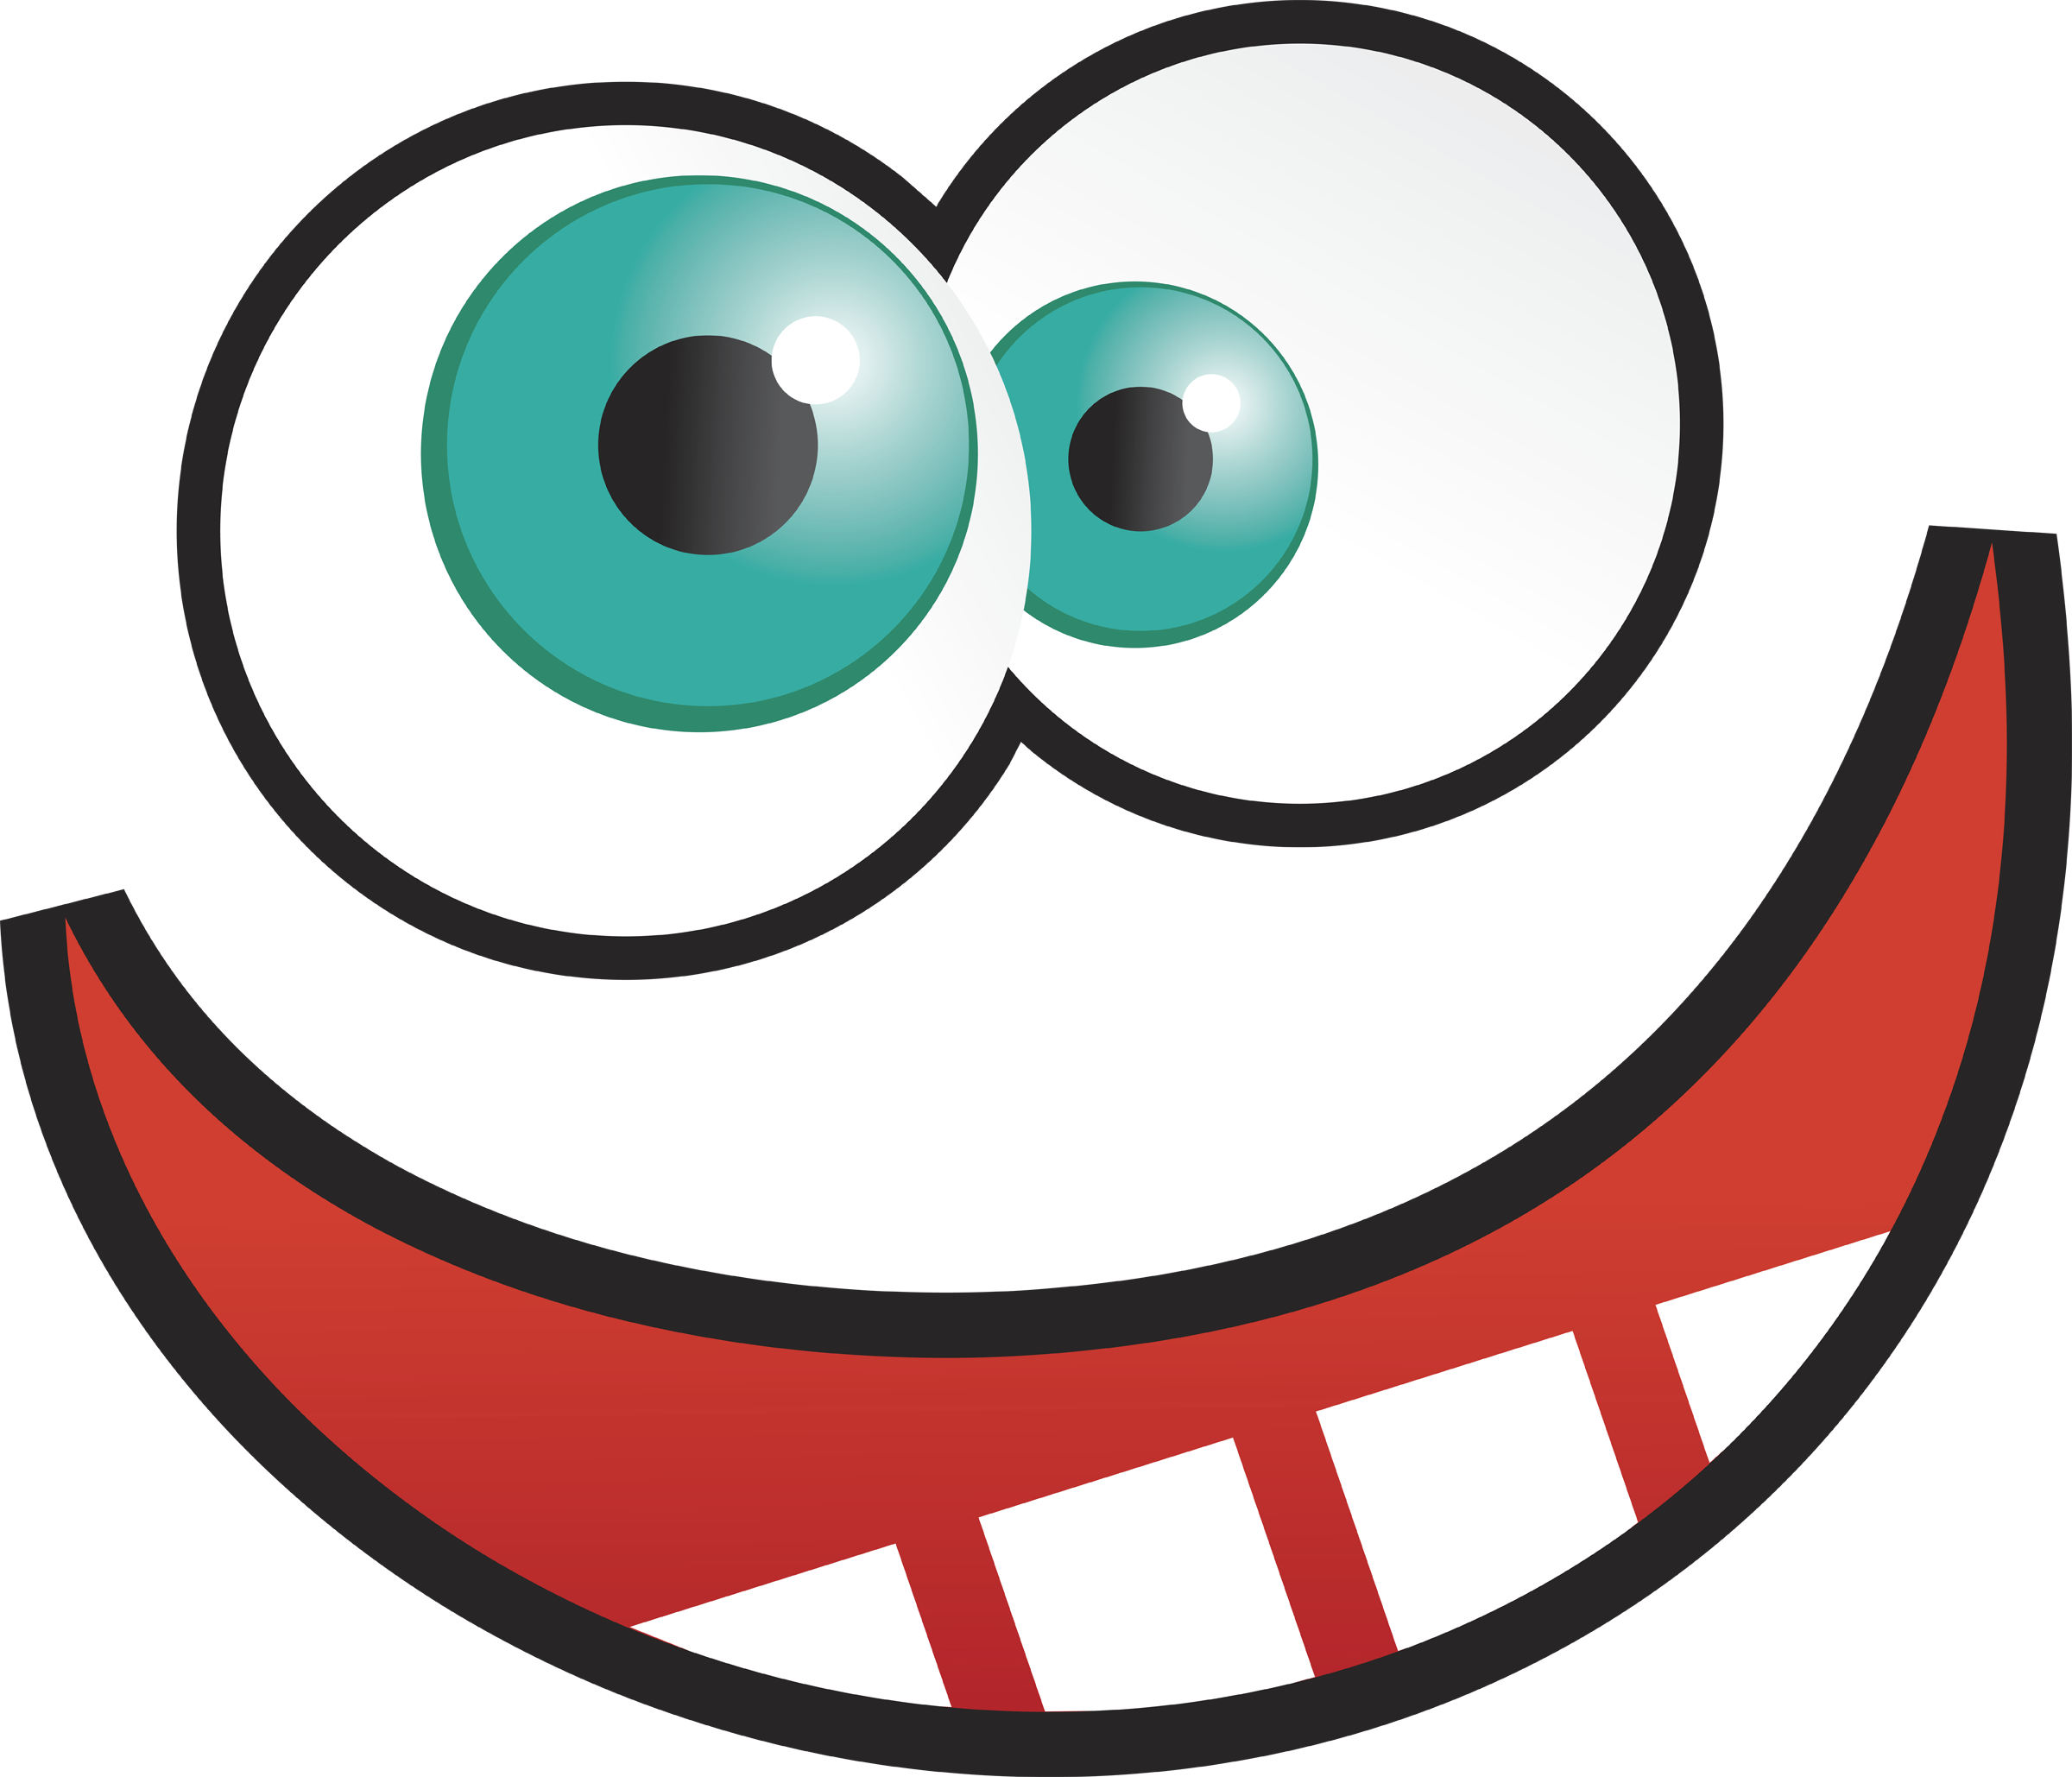 Crazy Cartoon Eyes - ClipArt Best